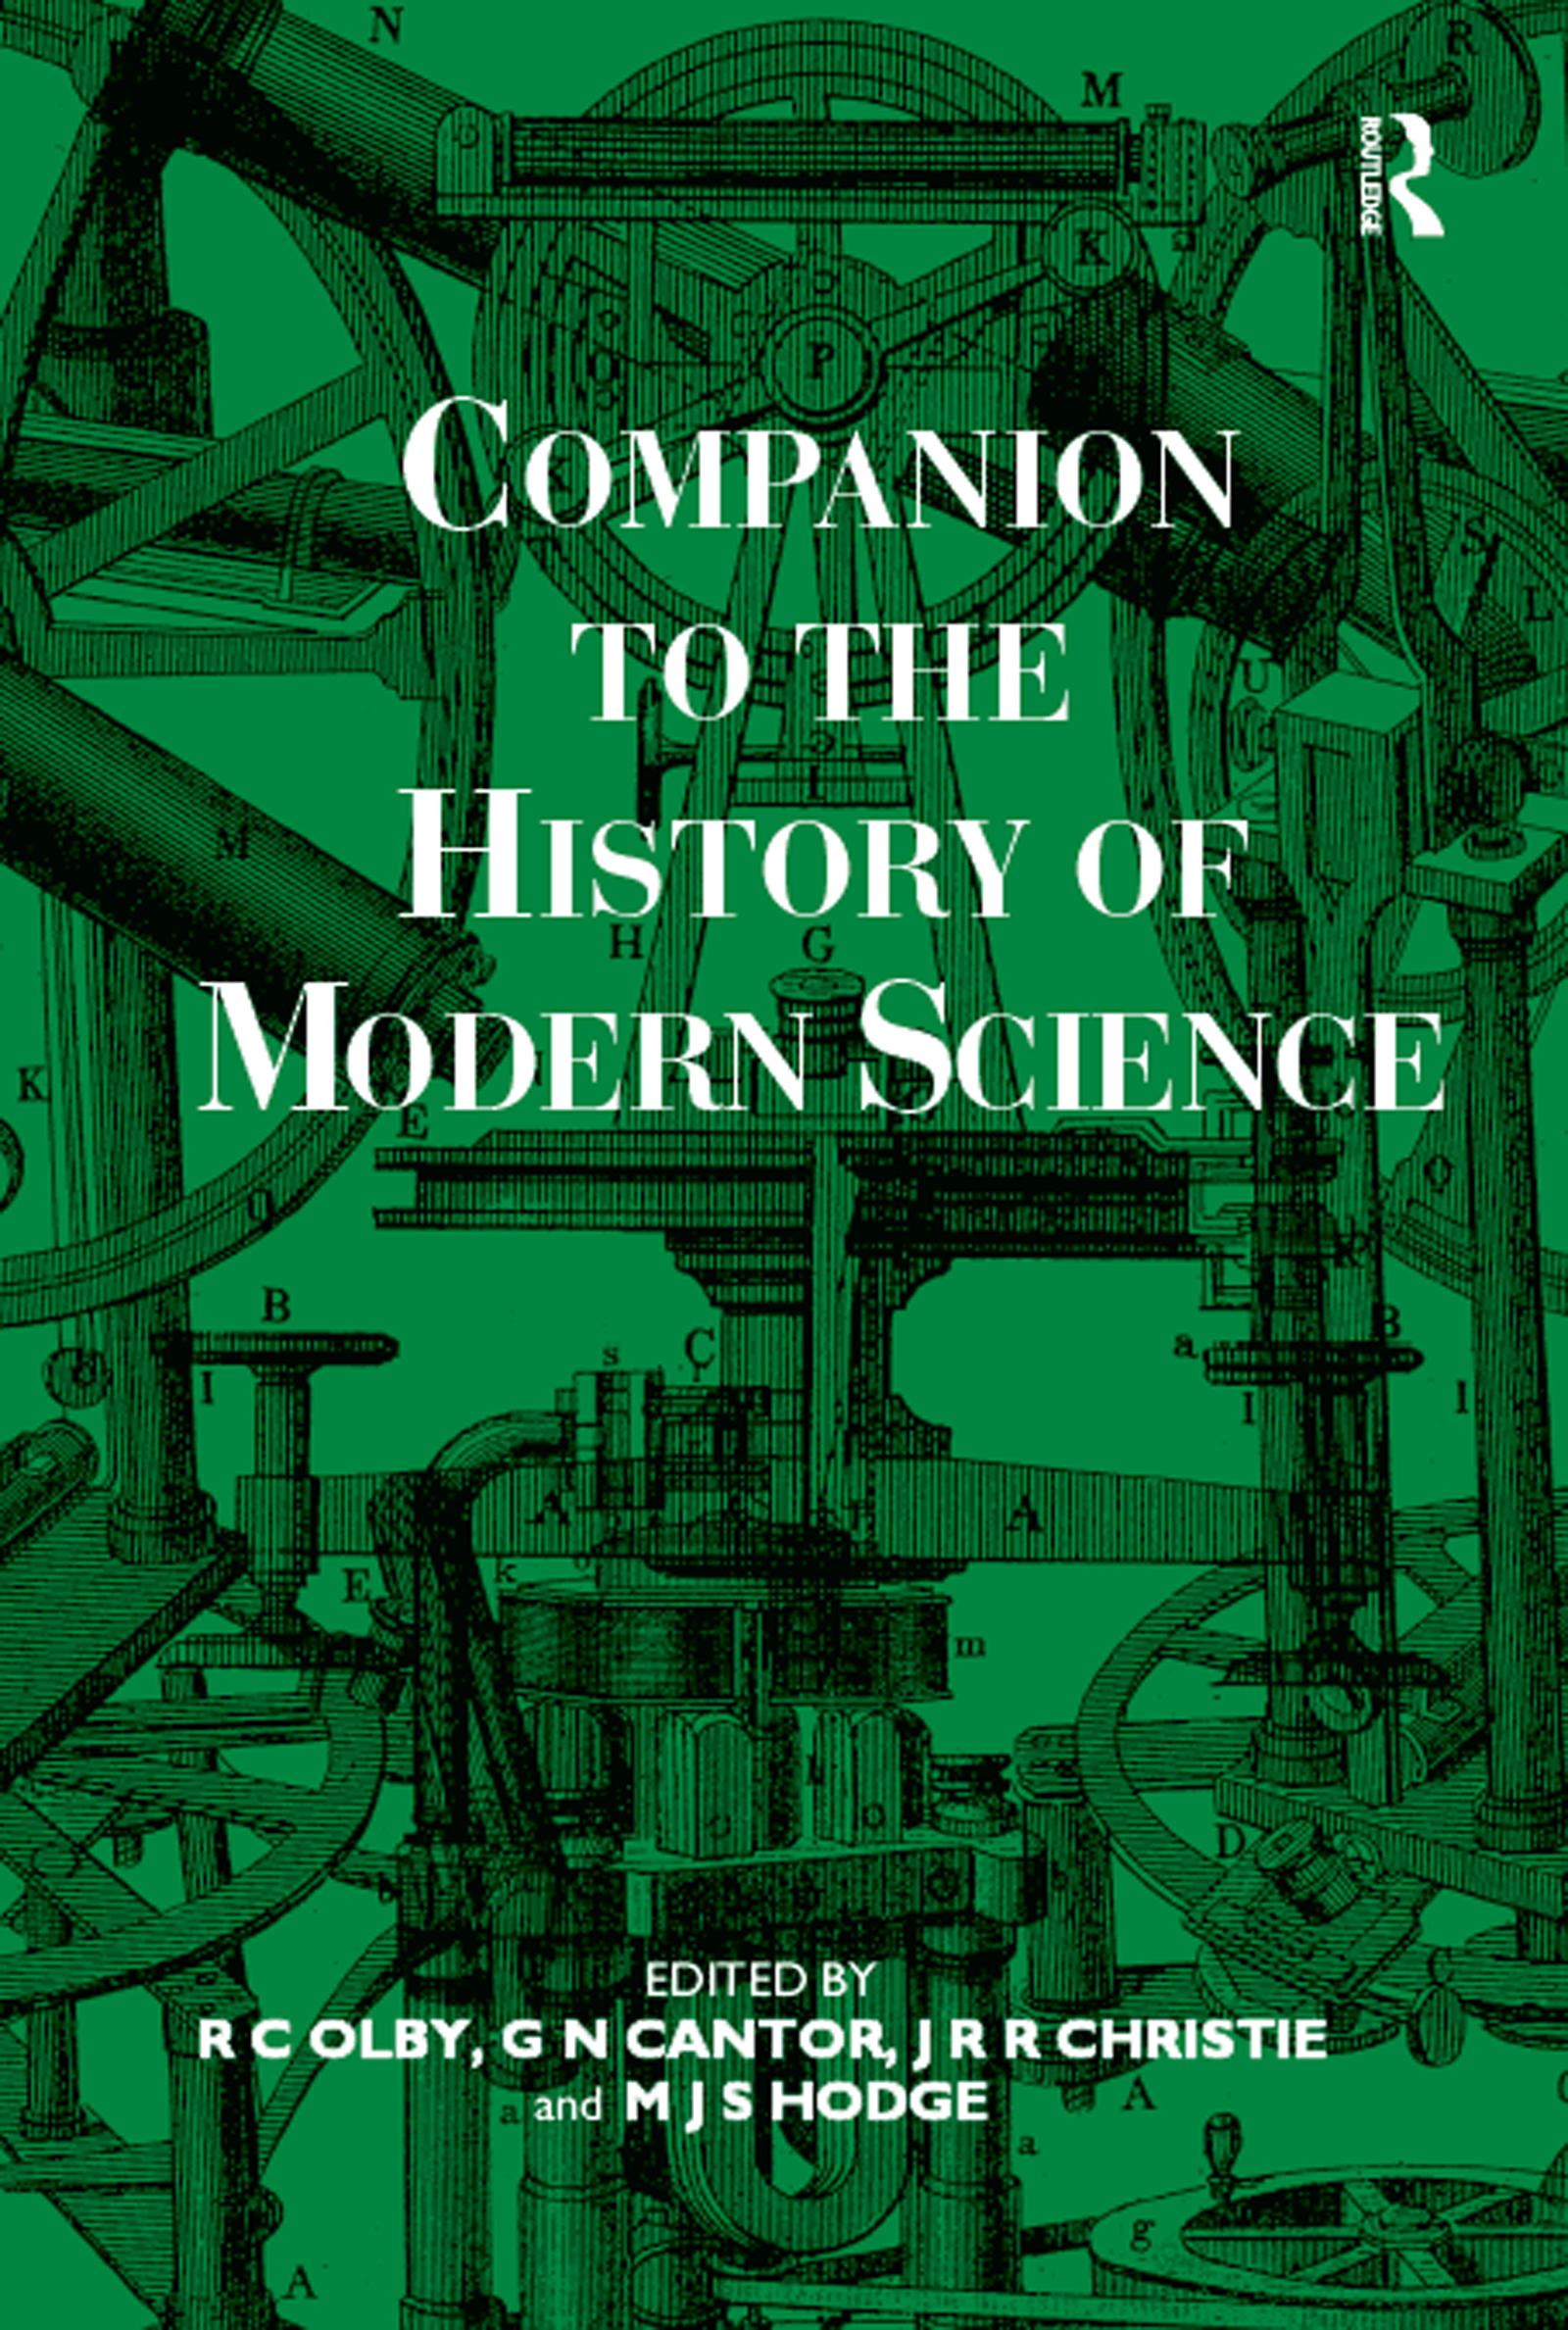 The History of Science and the Working Scientist